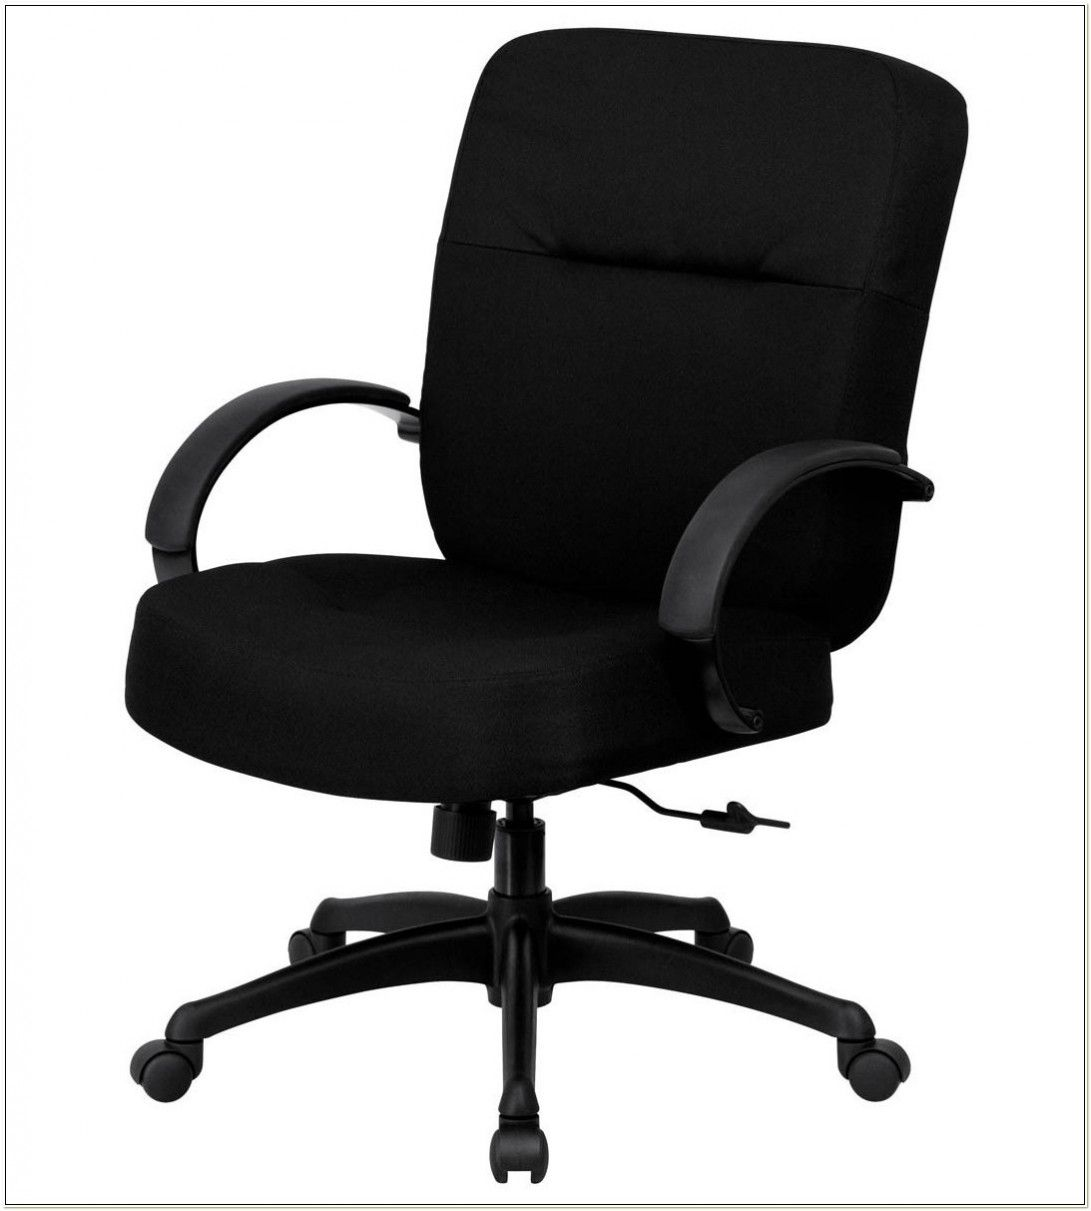 Office Chair Weight Capacity 400 Lbs Home Furniture Images Check More At Http